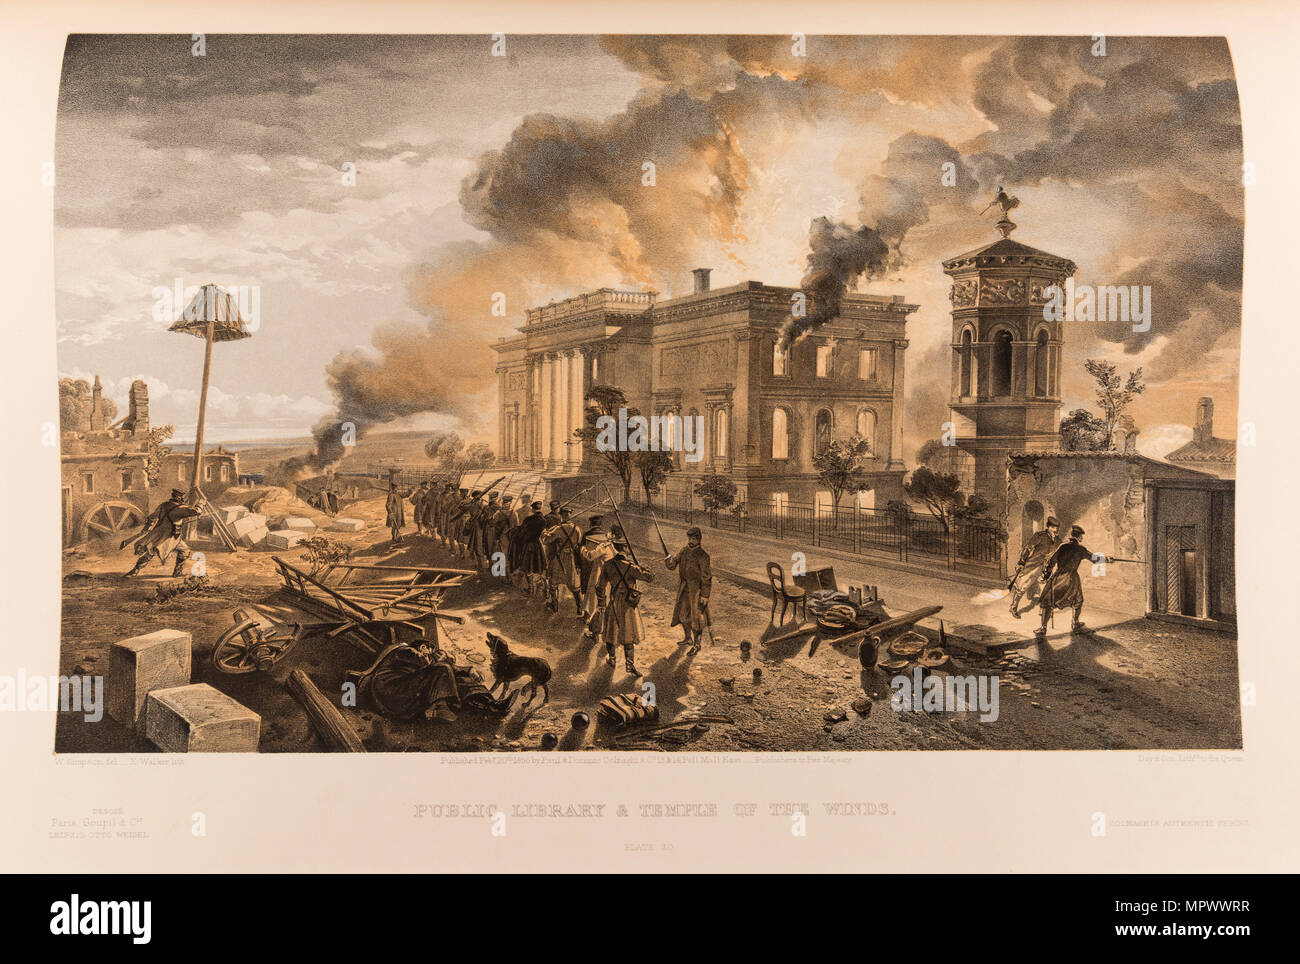 The burning of the Public Library and the Tower of the Winds in Sevastopol, 1855-1856. - Stock Image